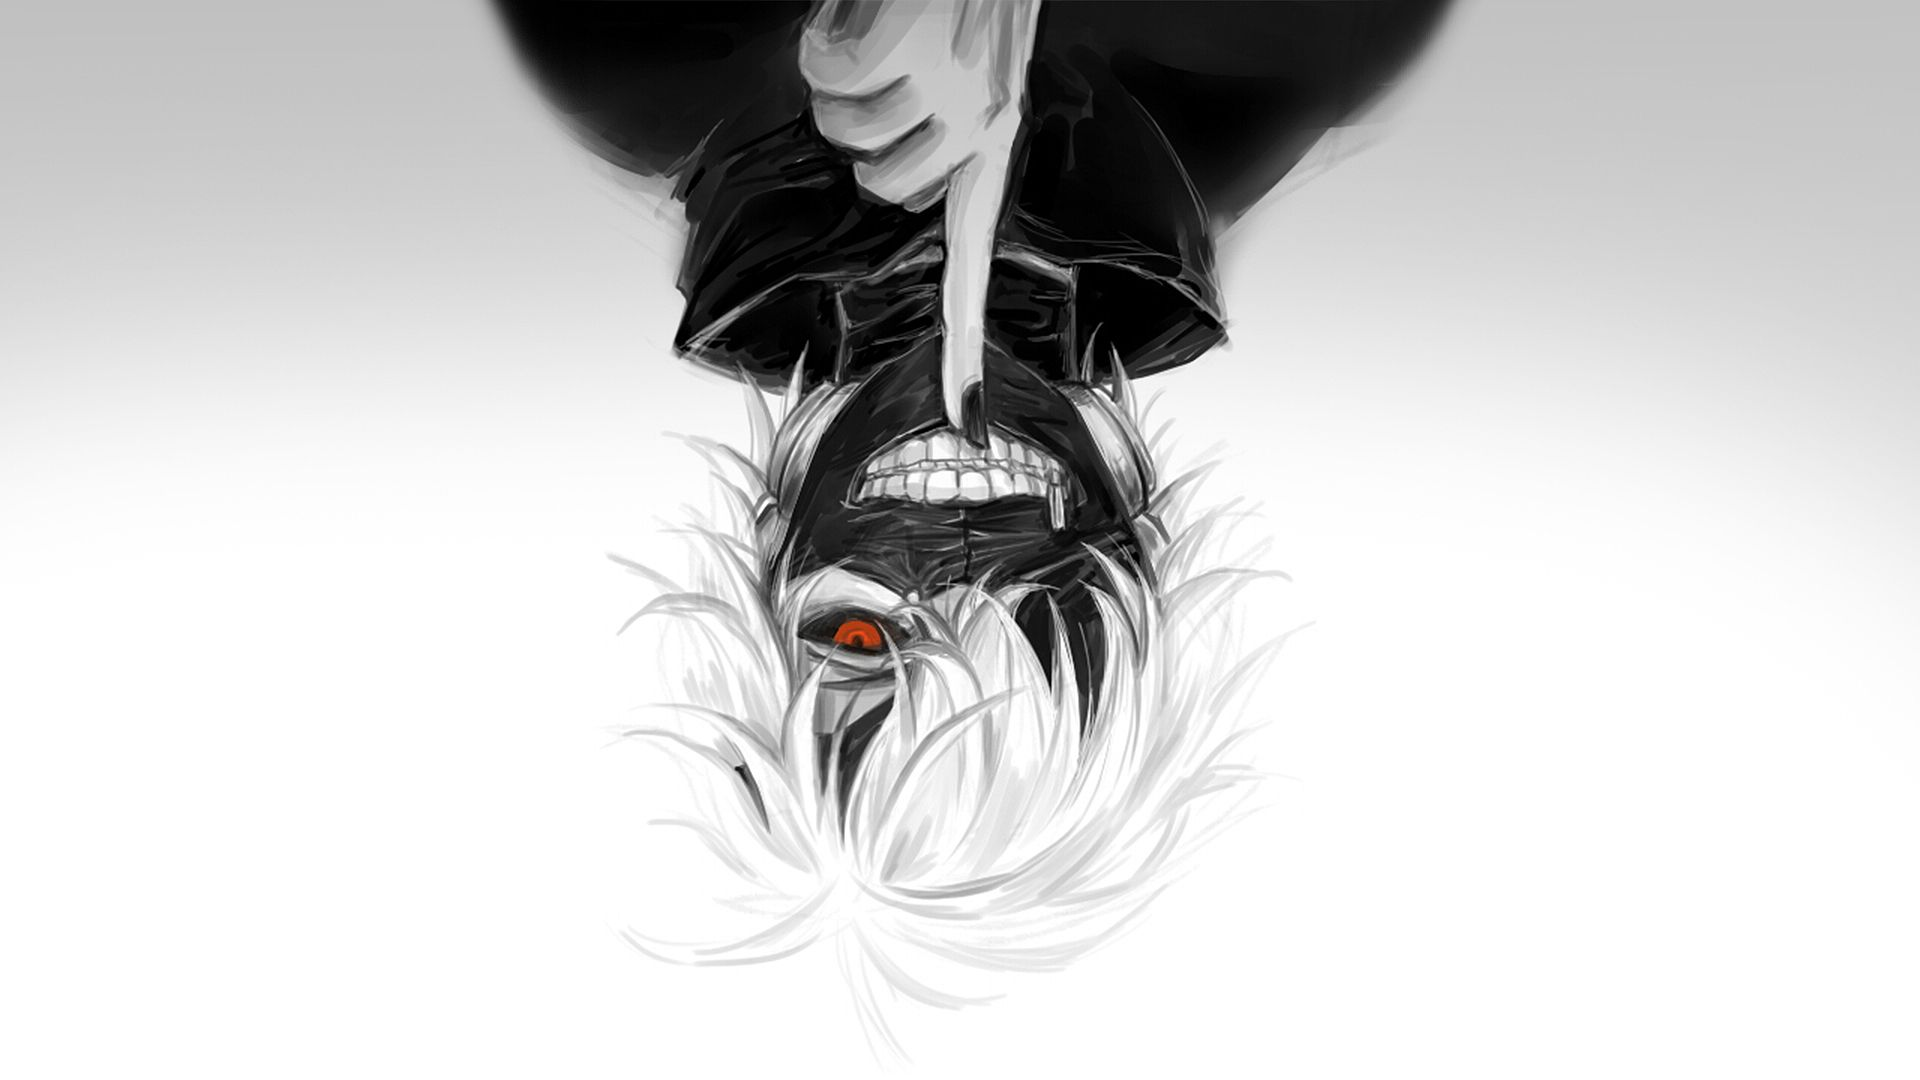 217 Tokyo Ghoul HD Wallpapers | Backgrounds - Wallpaper Abyss